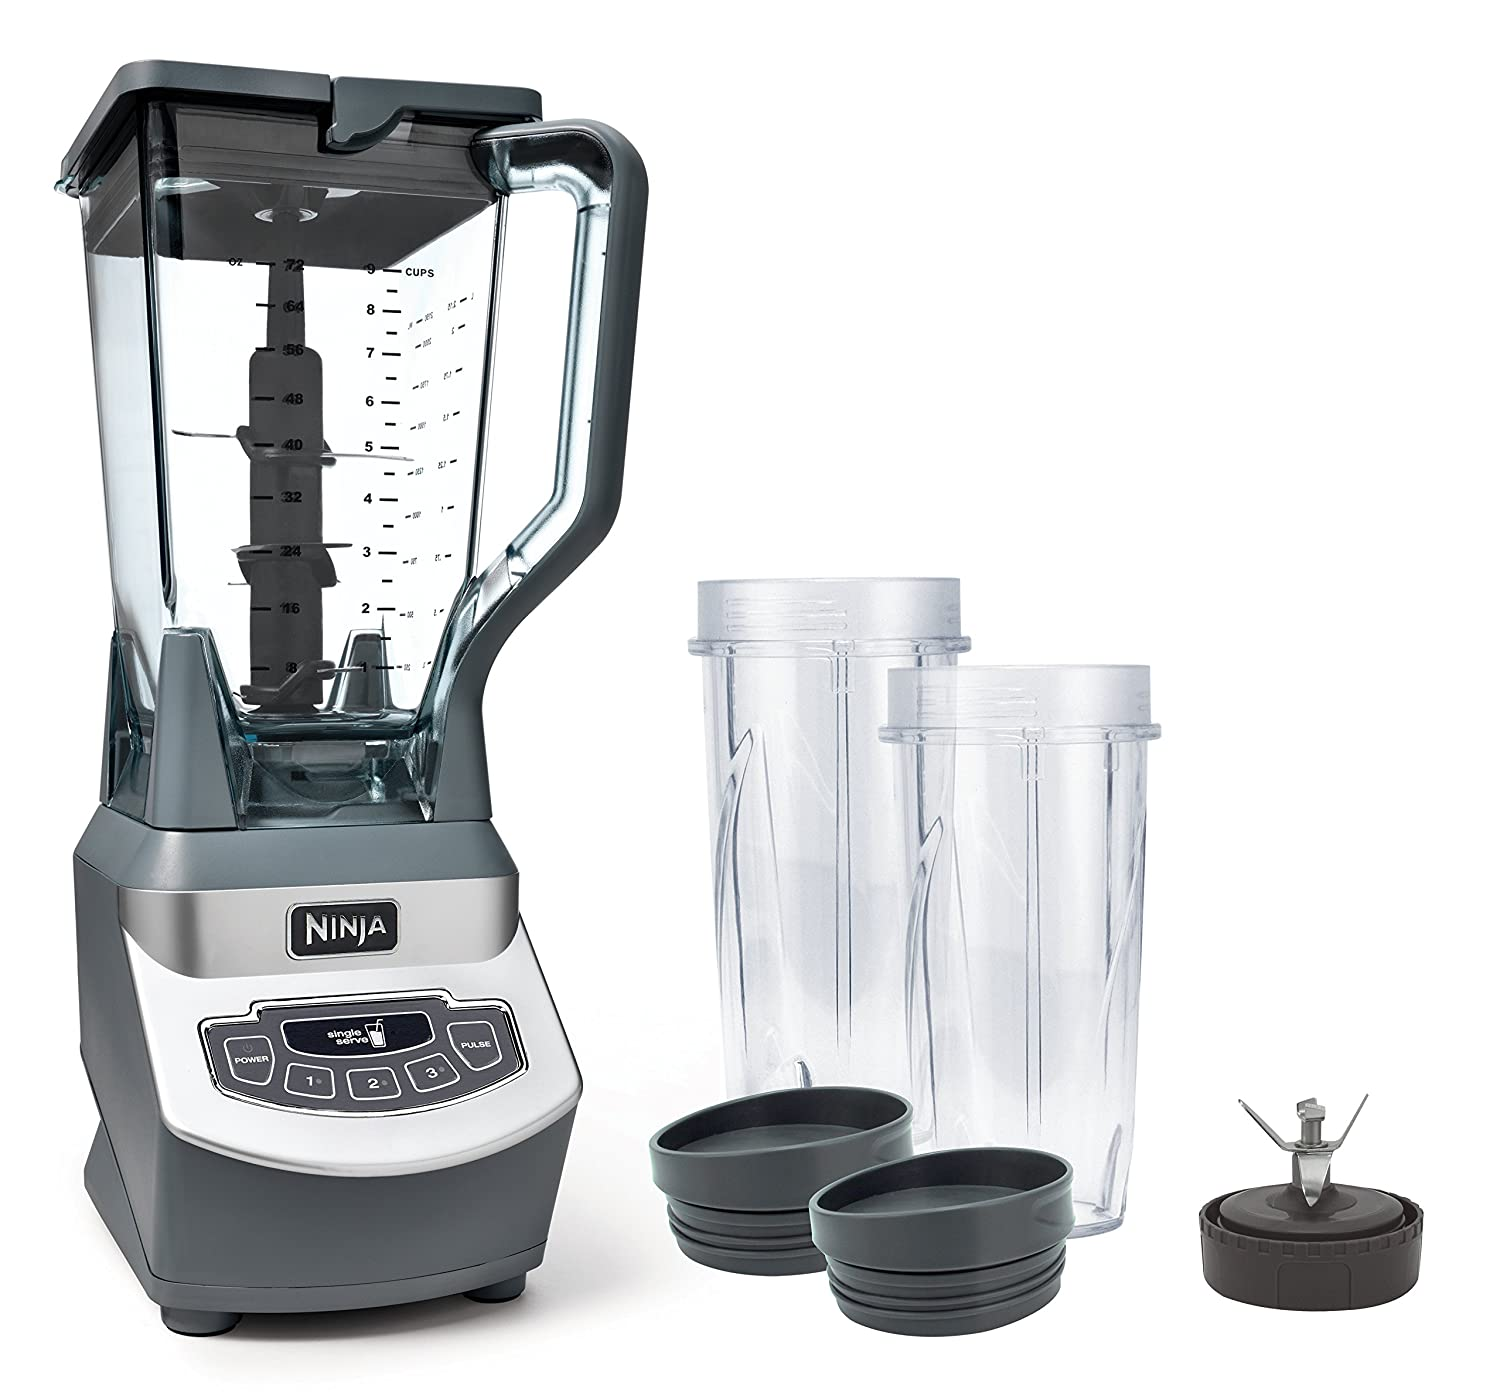 SharkNinja Ninja Professional Countertop Blender with 1100-Watt Base, 72oz Total Crushing Pitcher